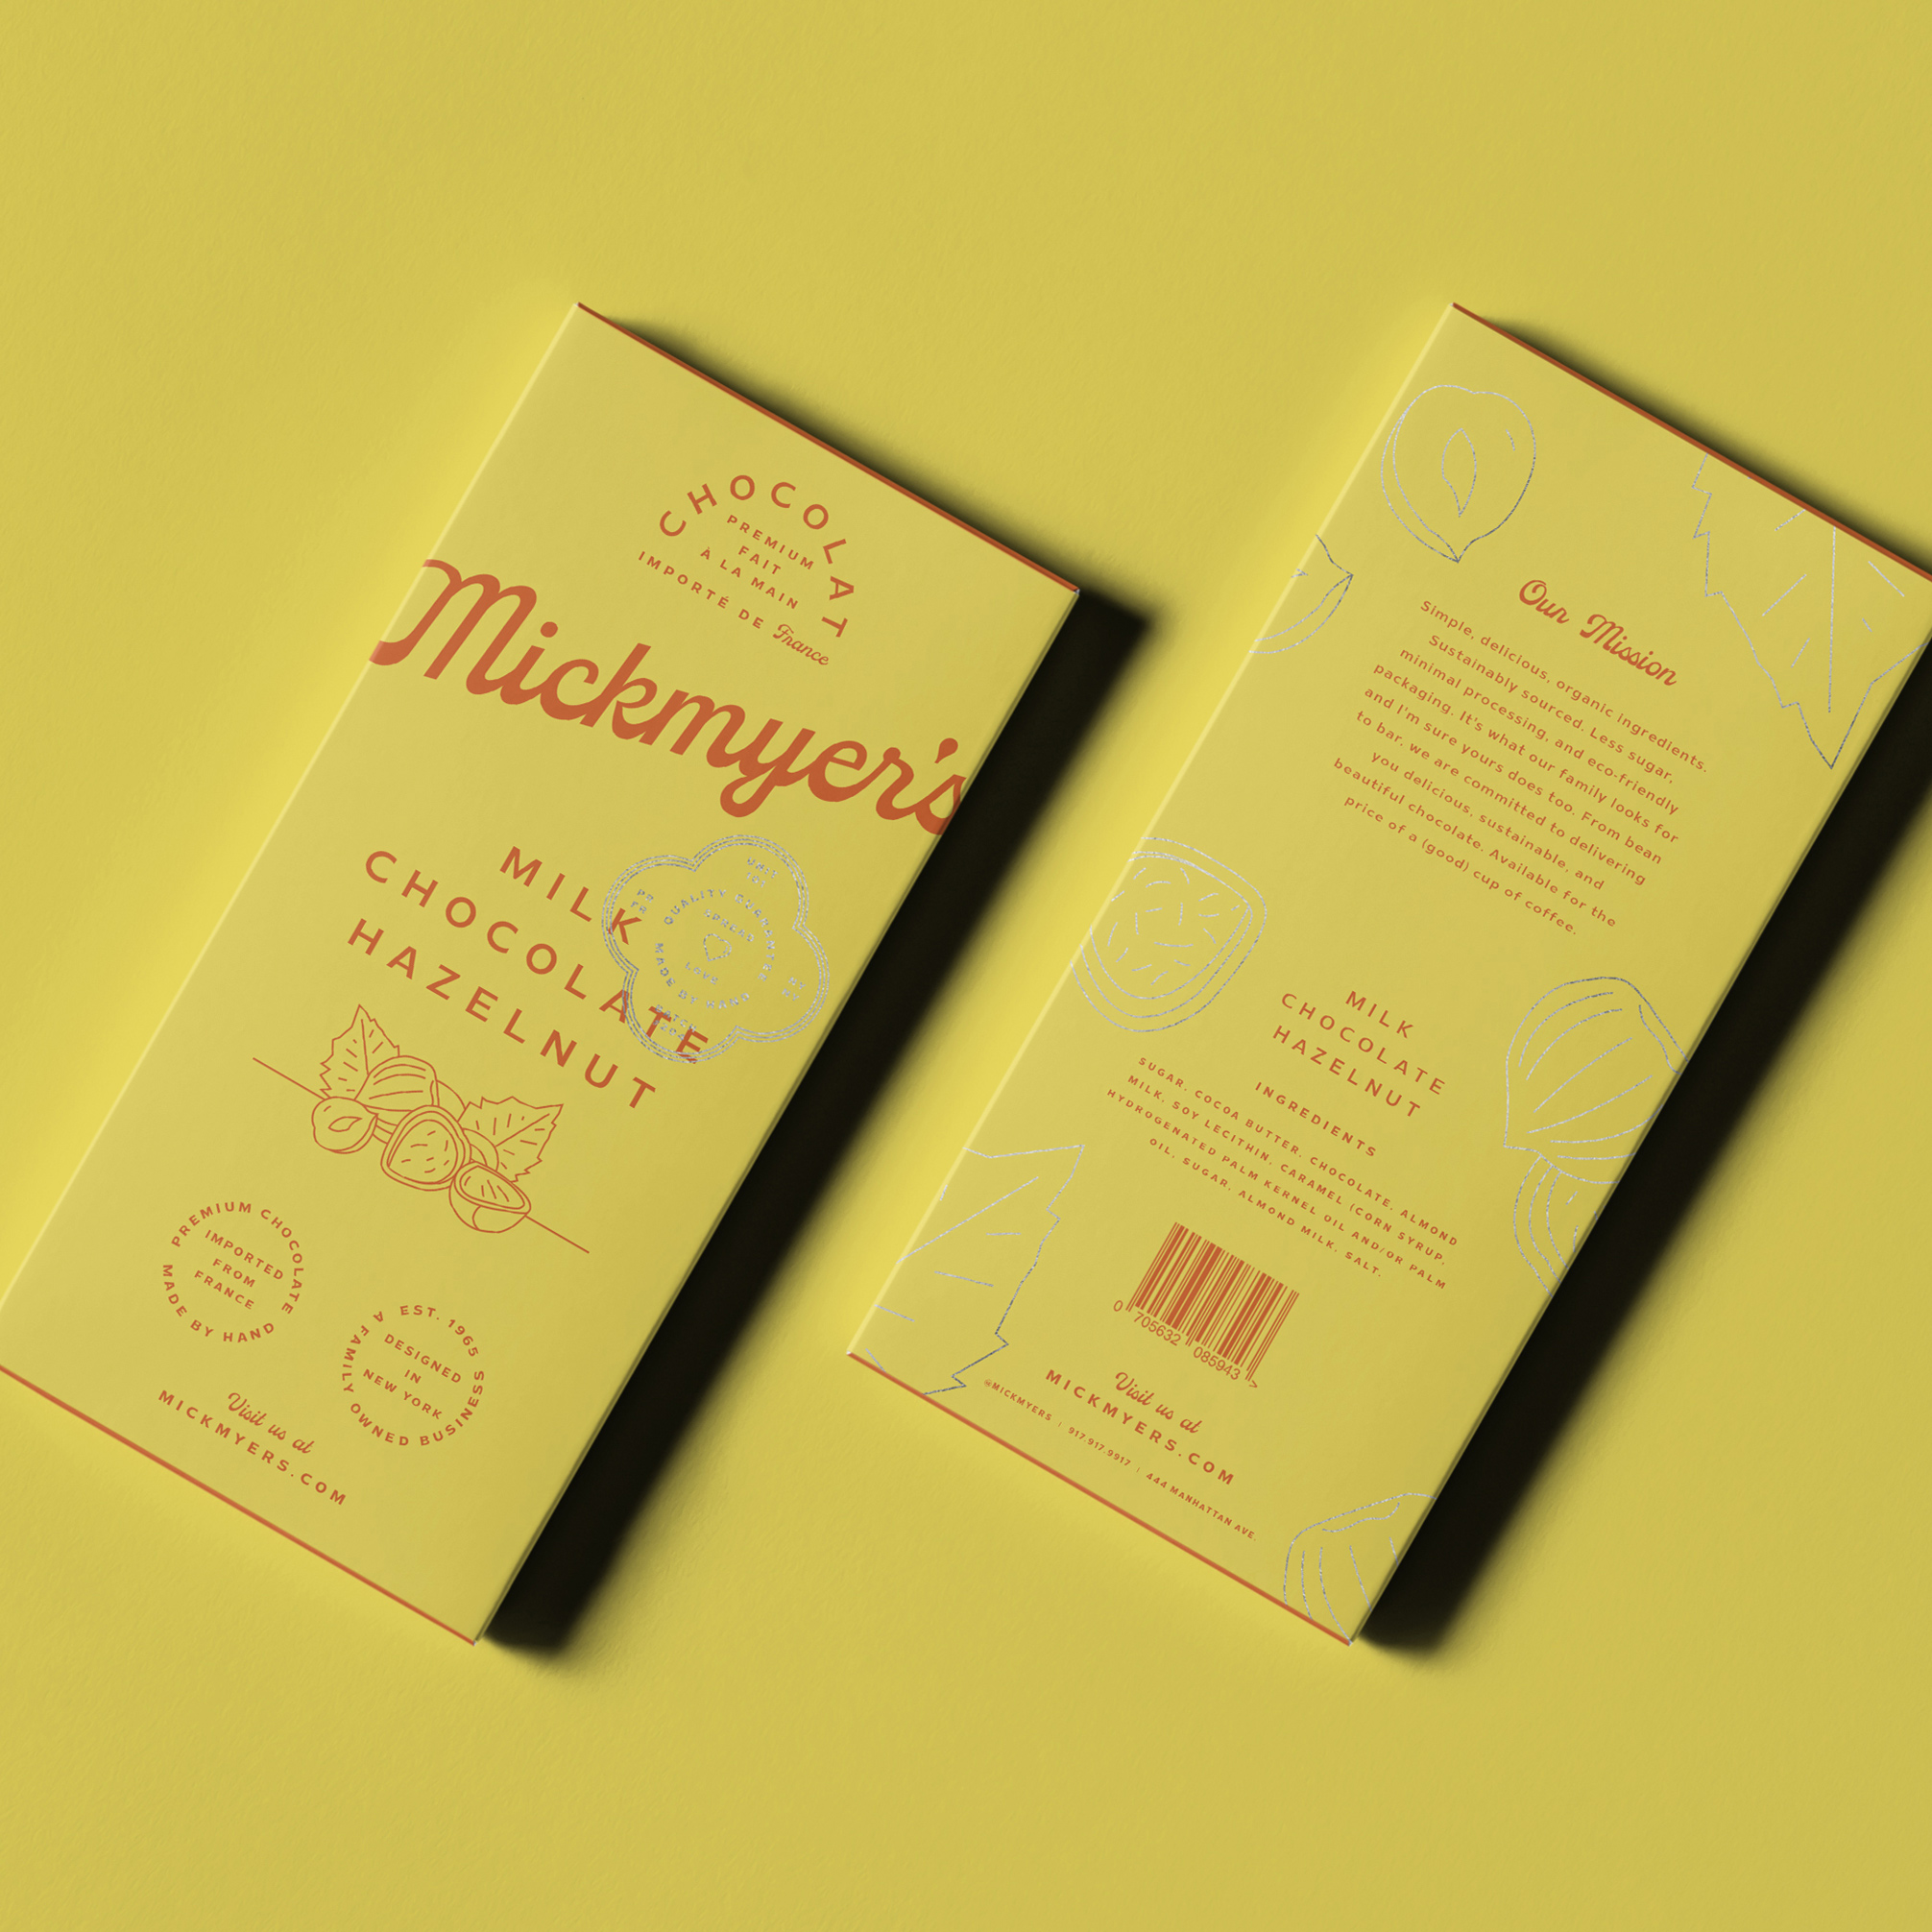 Brandon Nickerson creates new chocolate packaging design for Mickmyer's